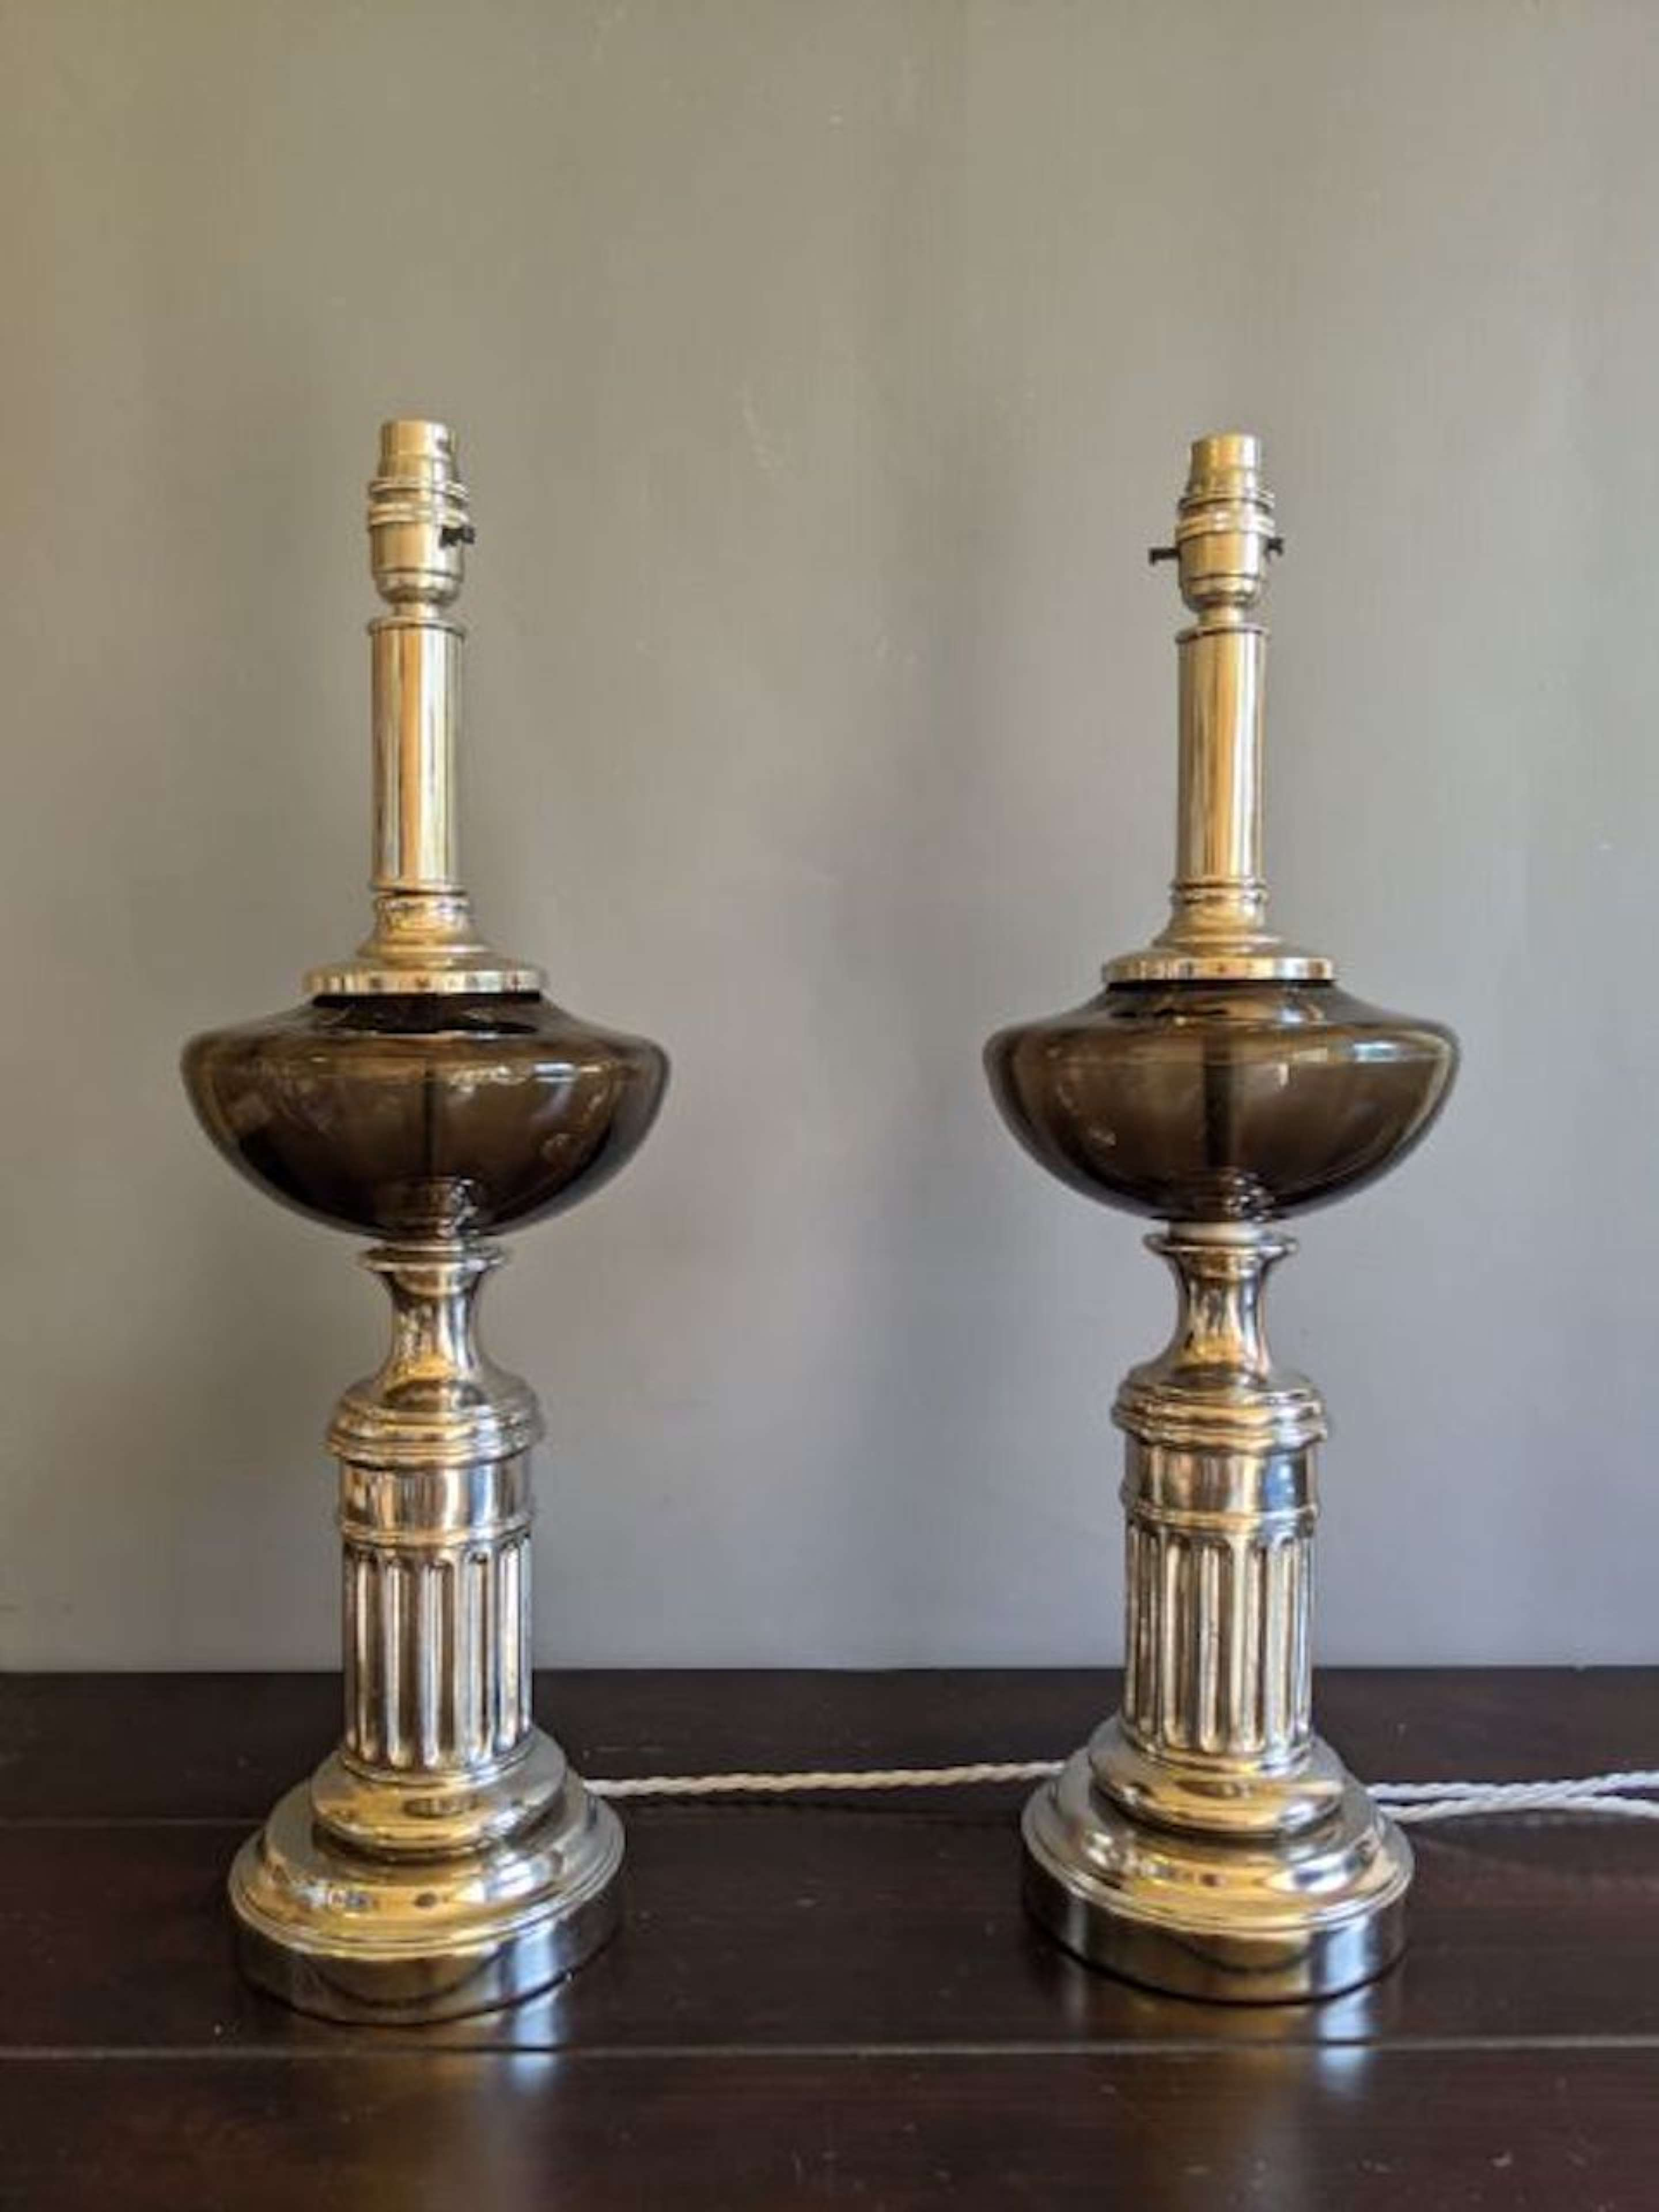 Interesting pair of glass & Nickel Plated Lamps